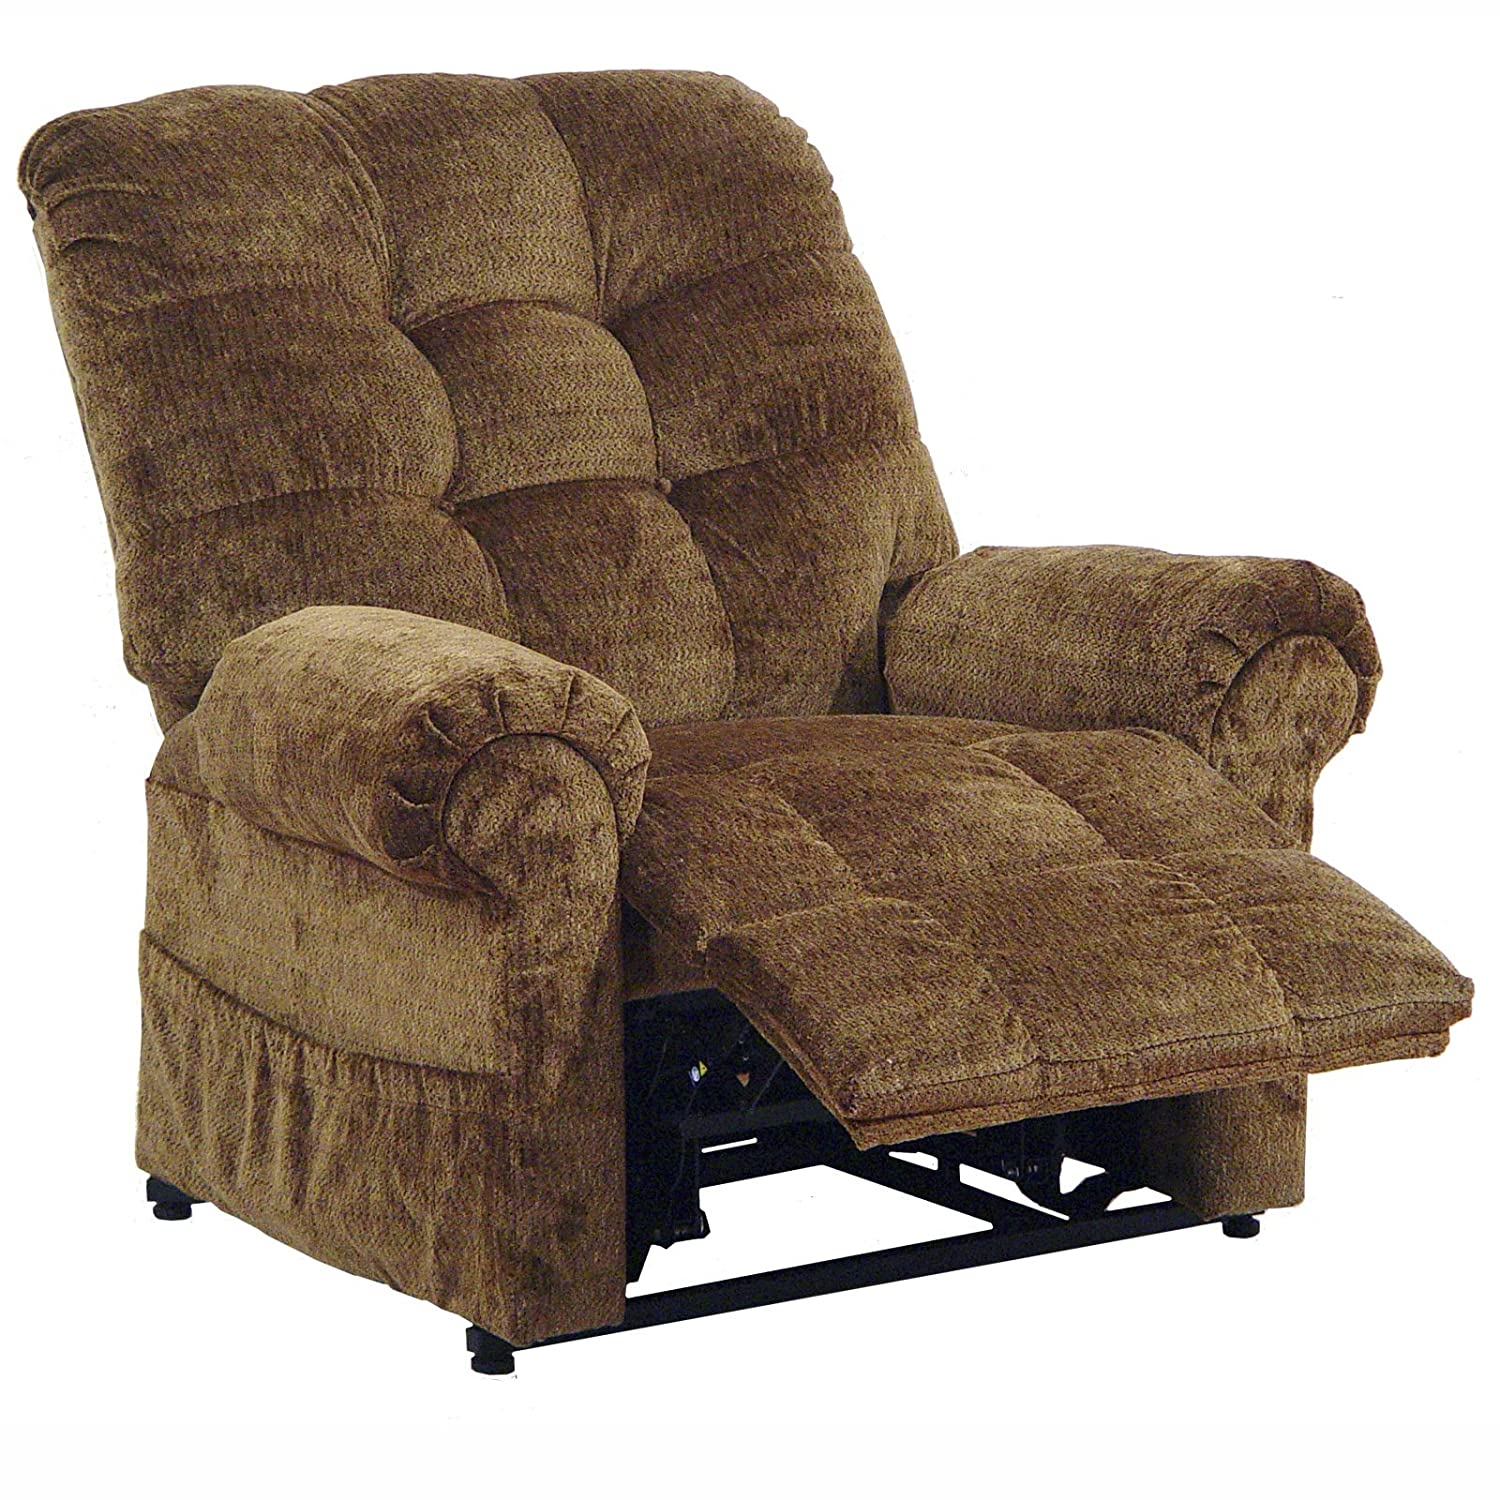 power lift chair heavy duty canada plus size recliners for big men to rockers